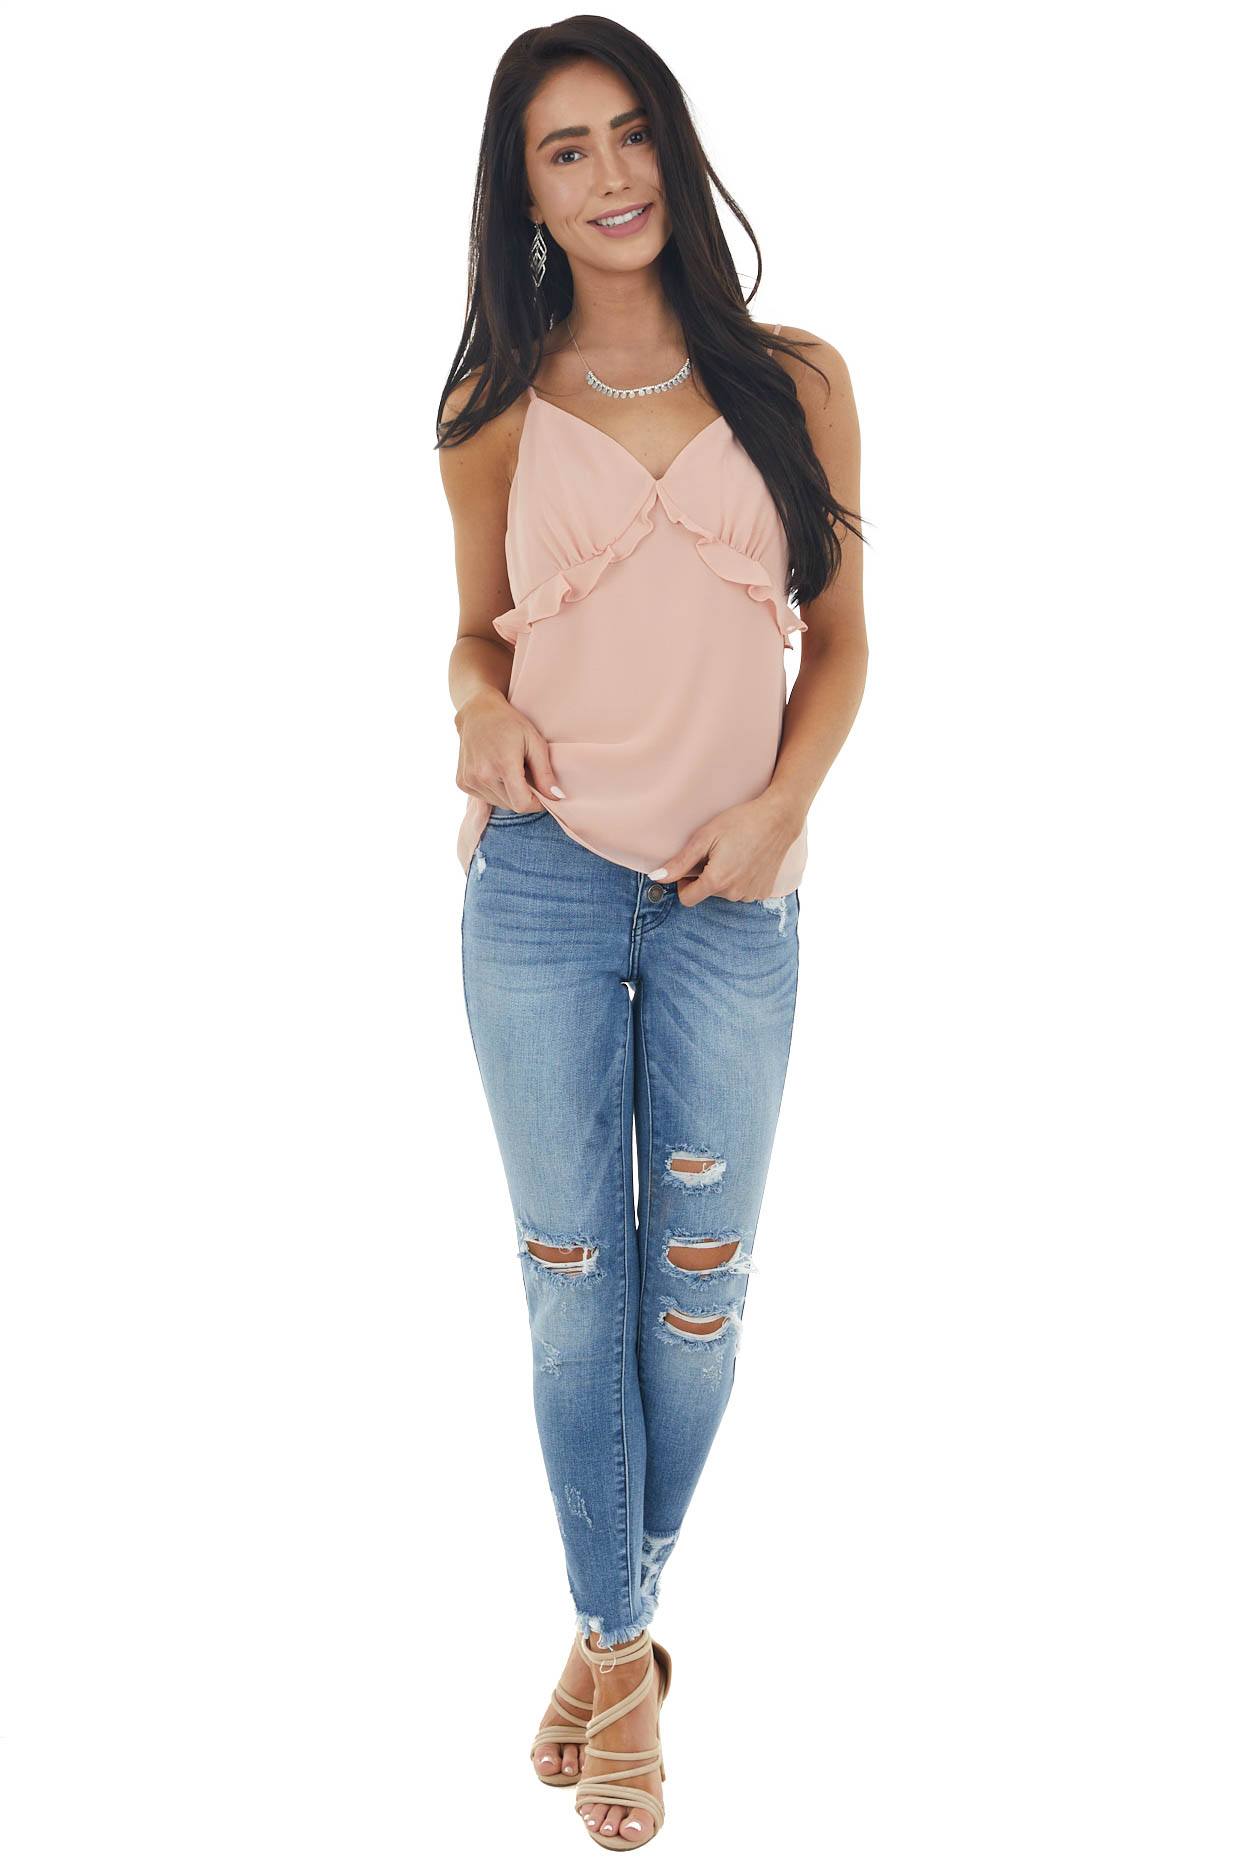 Peach Sleeveless Woven V Neck Camisole with Ruffle Detail